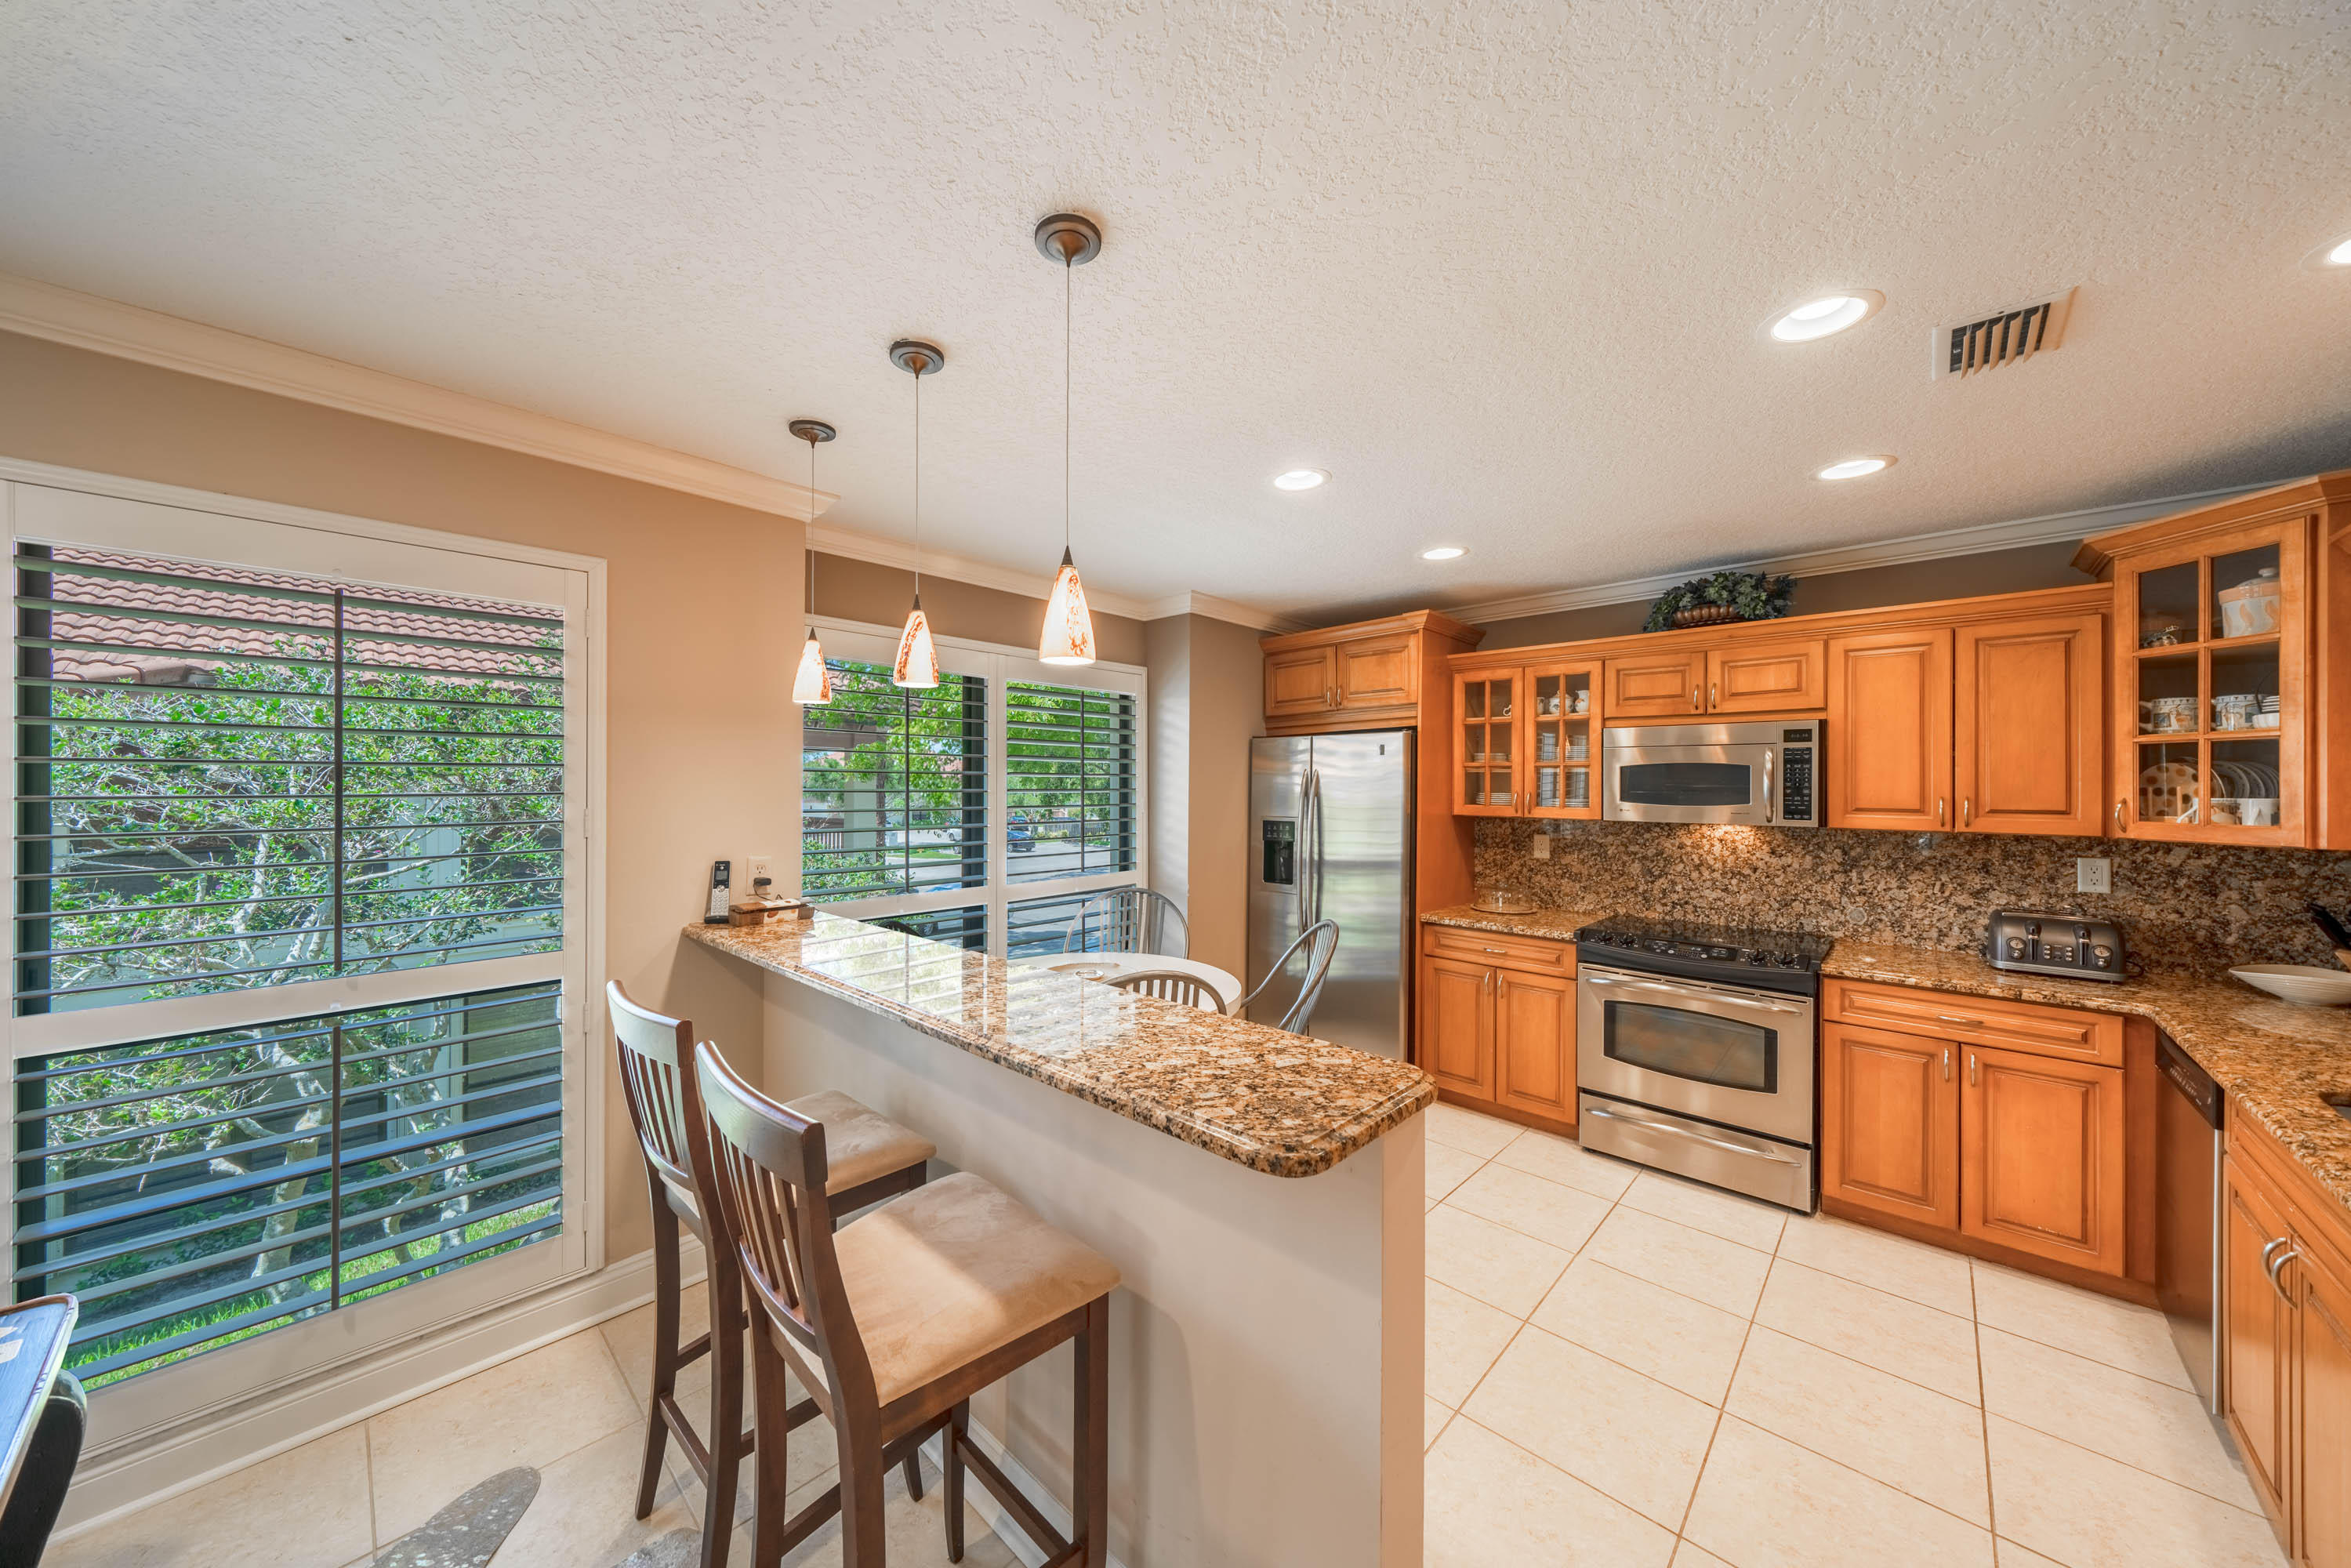 489 Brackenwood Lane, Palm Beach Gardens, Florida 33418, 2 Bedrooms Bedrooms, ,2 BathroomsBathrooms,A,Condominium,Brackenwood,RX-10509506